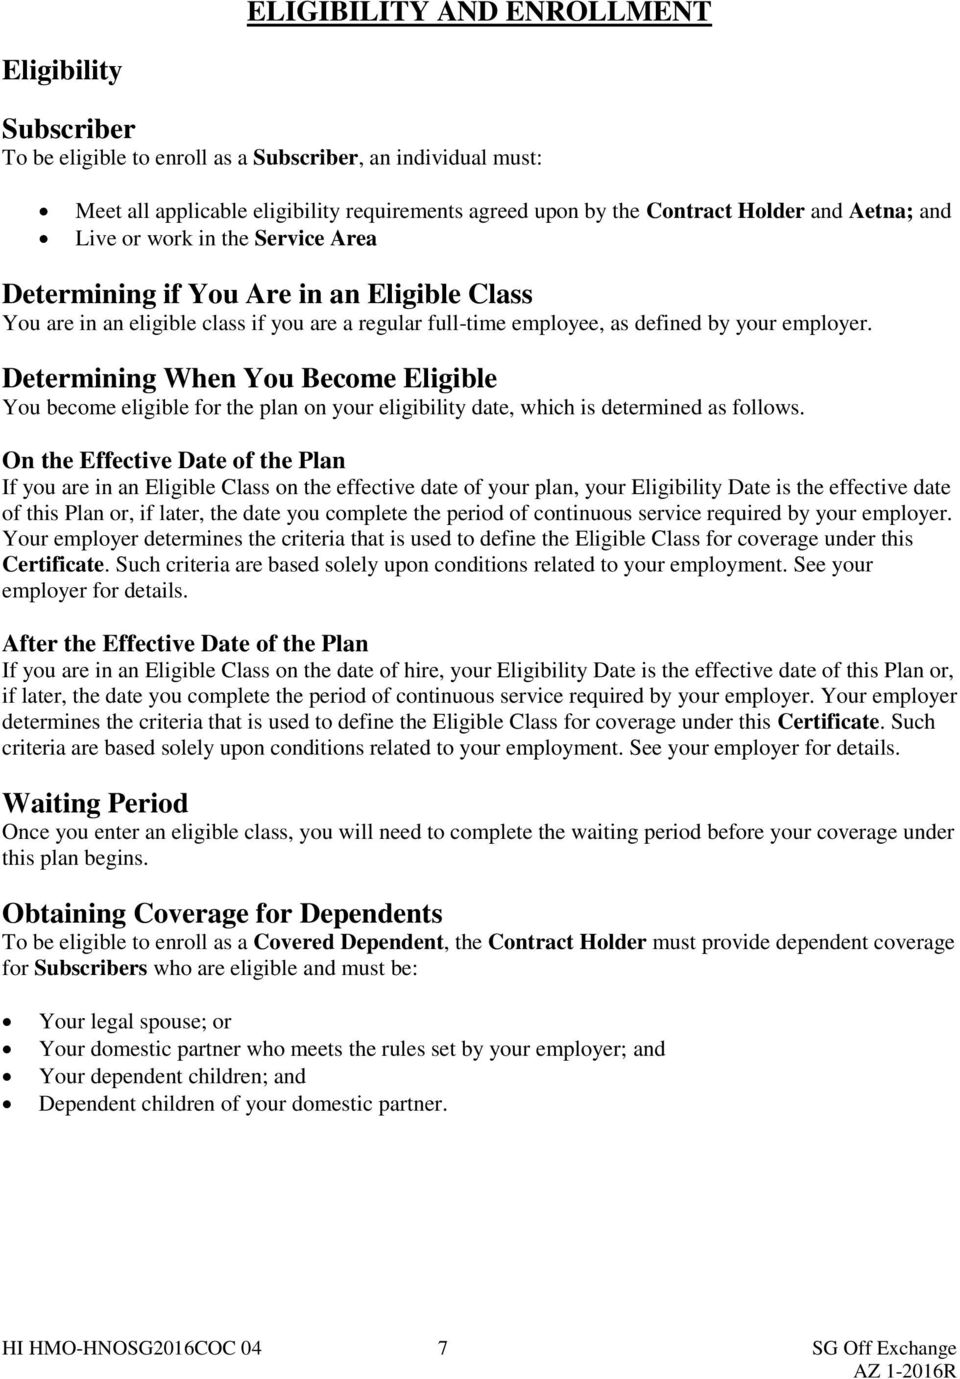 Determining When You Become Eligible You become eligible for the plan on your eligibility date, which is determined as follows.